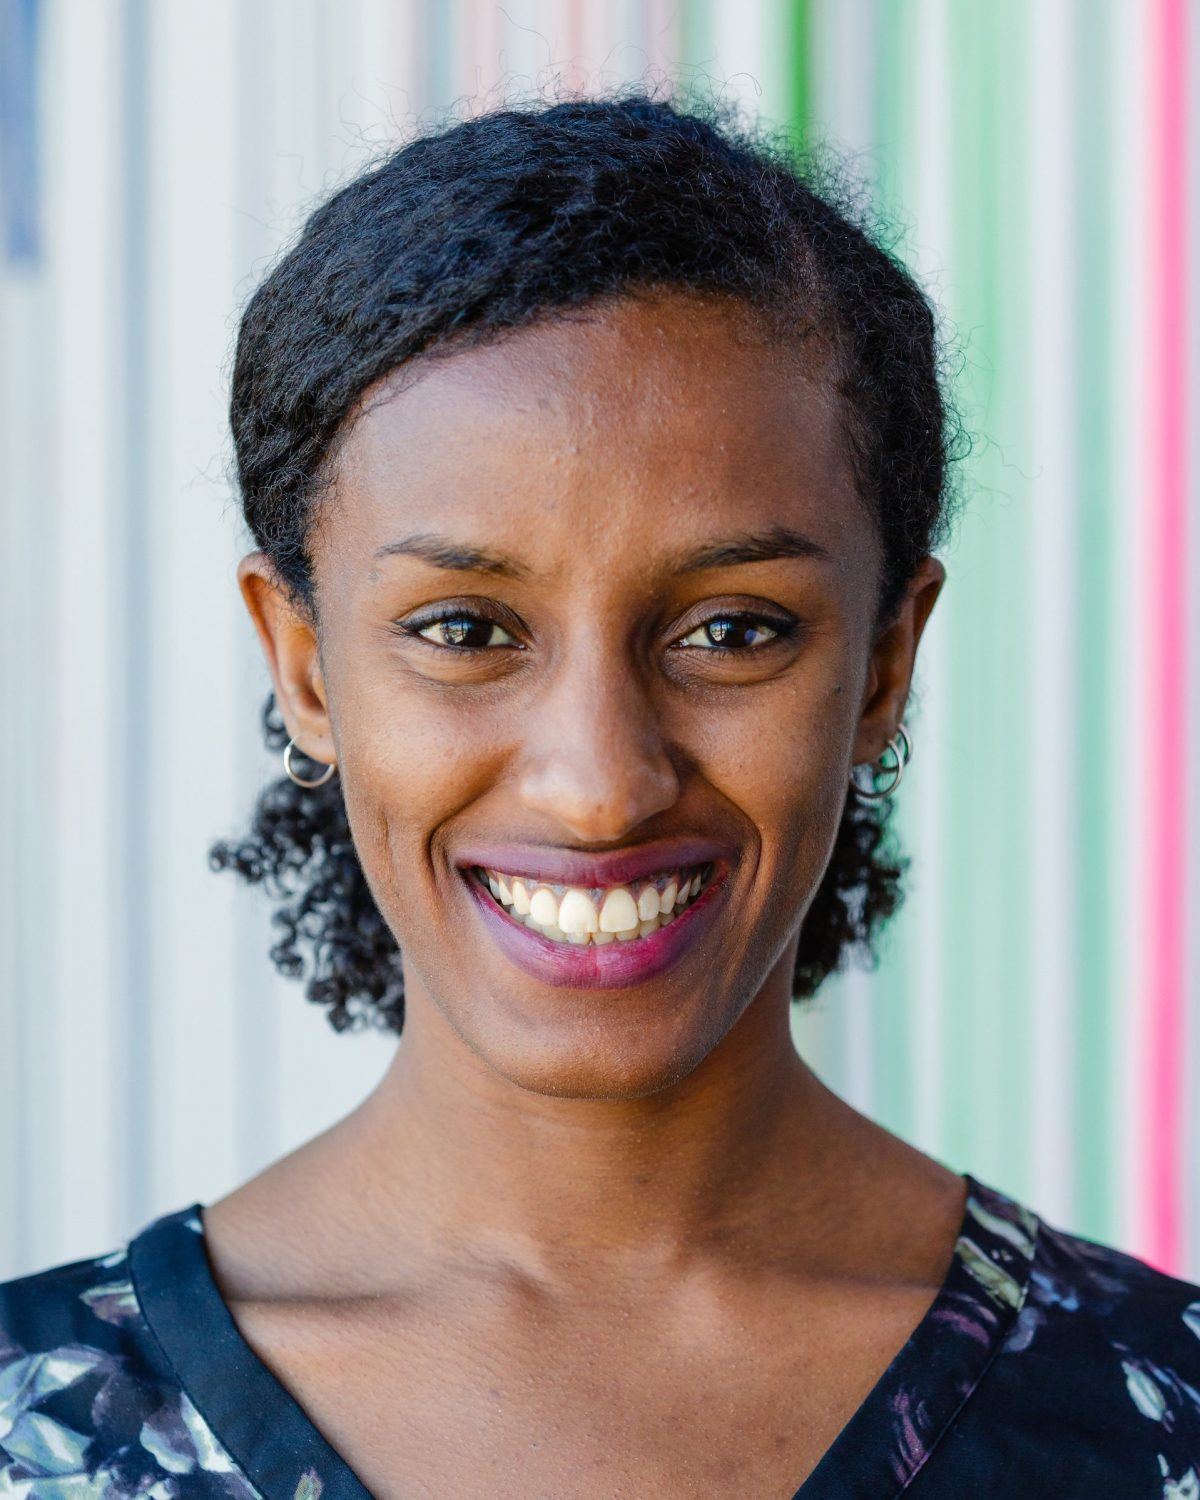 MD4SG Co-Founder Rediet Abebe Joins Blum Faculty